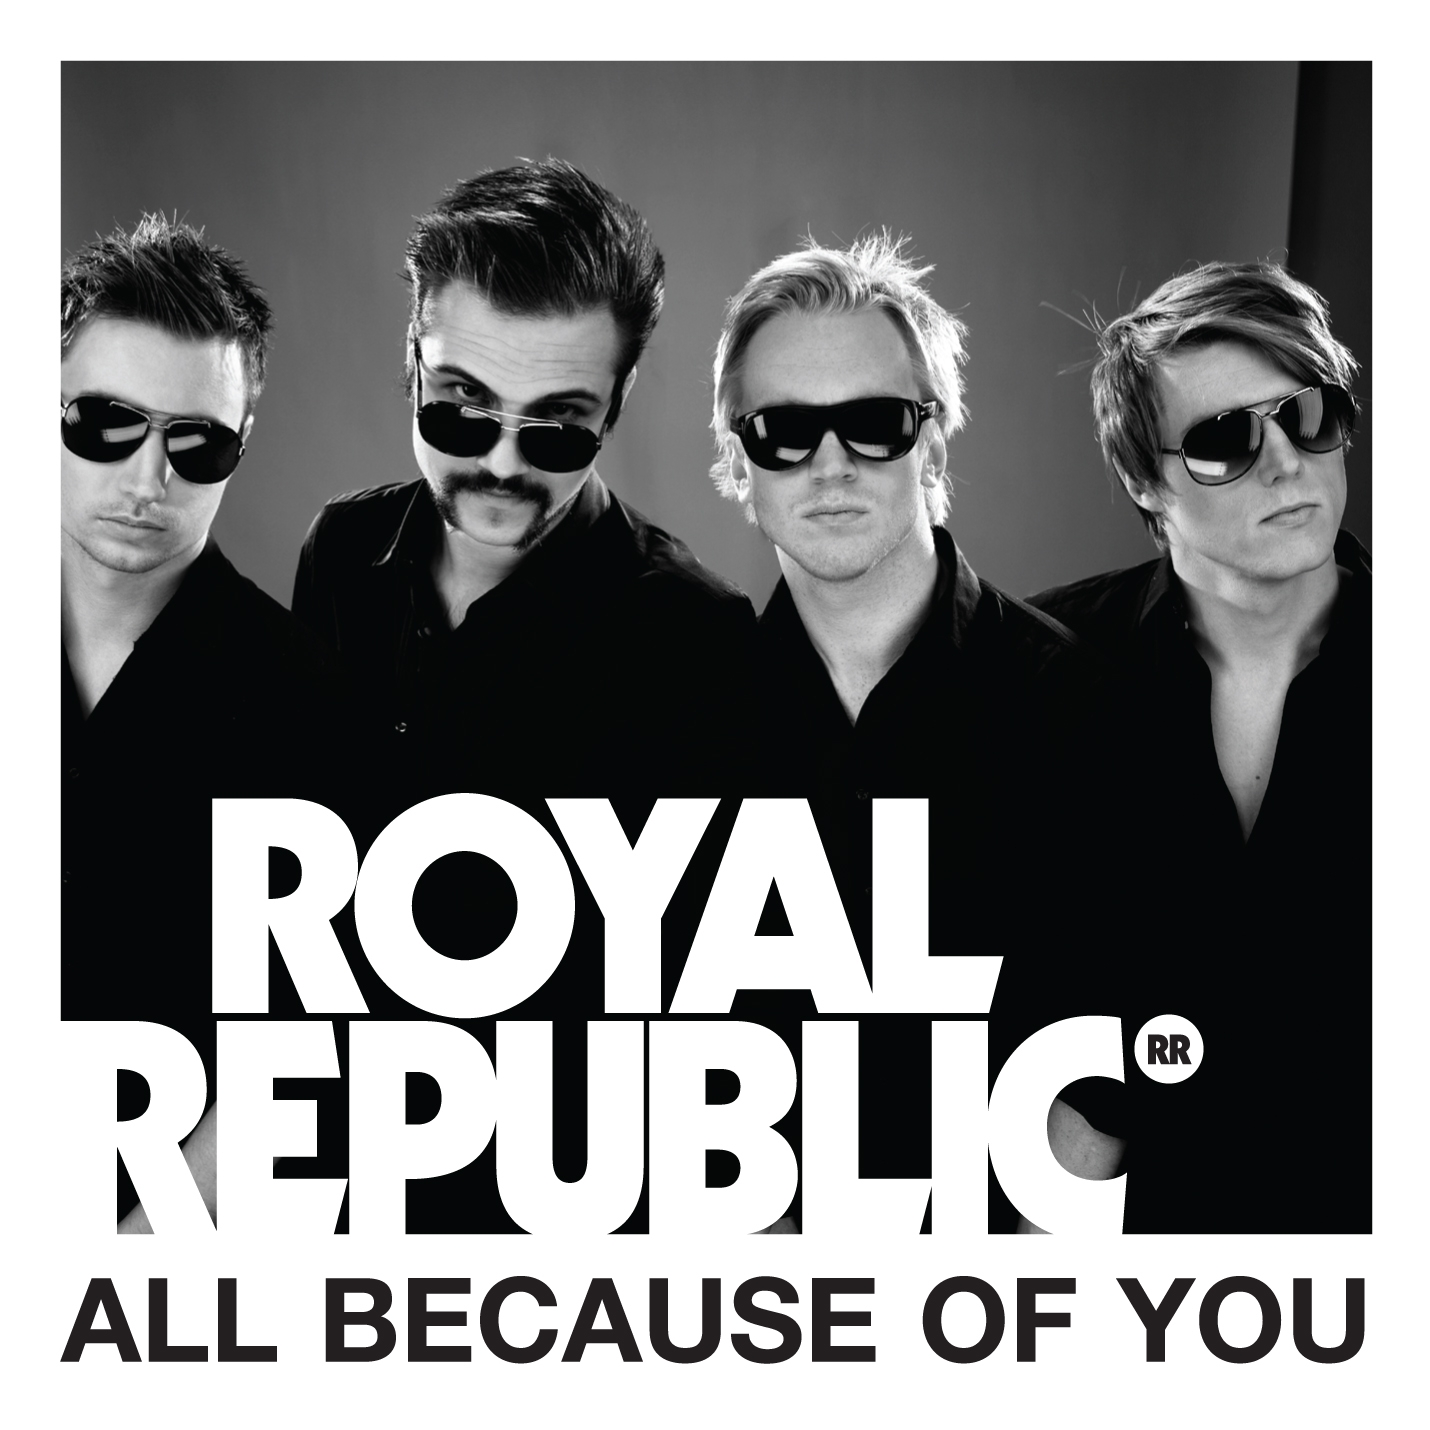 Royal_Republic___All_Because_Of_You_EP_artwork.jpg